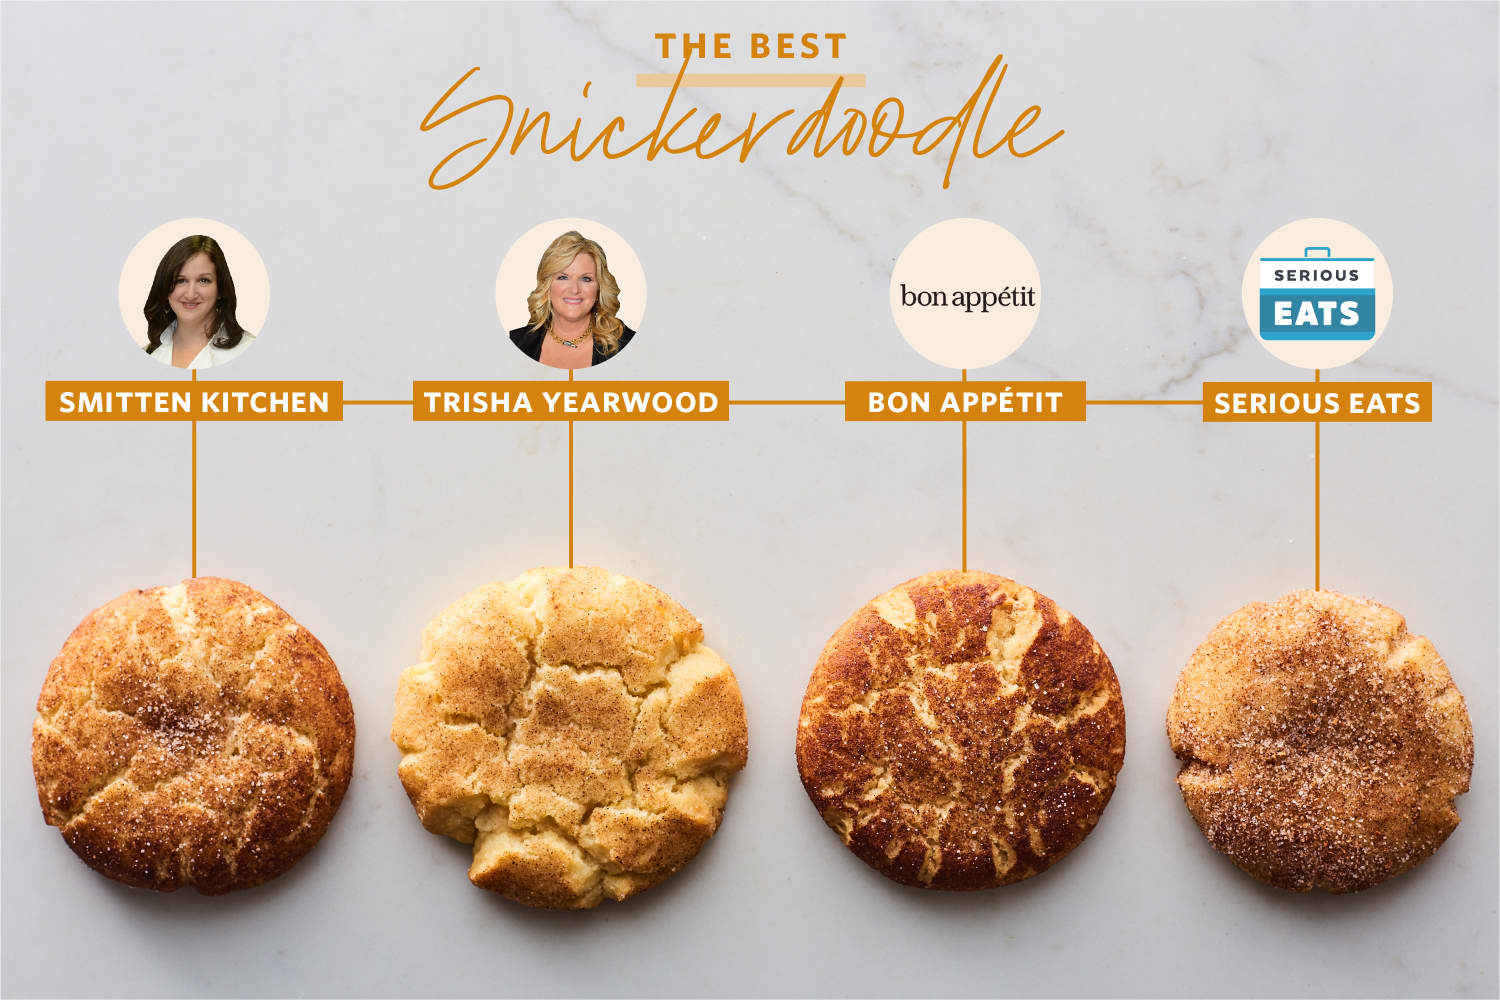 We Tested 4 Popular Snickerdoodle Recipes and Found a Clear Winner